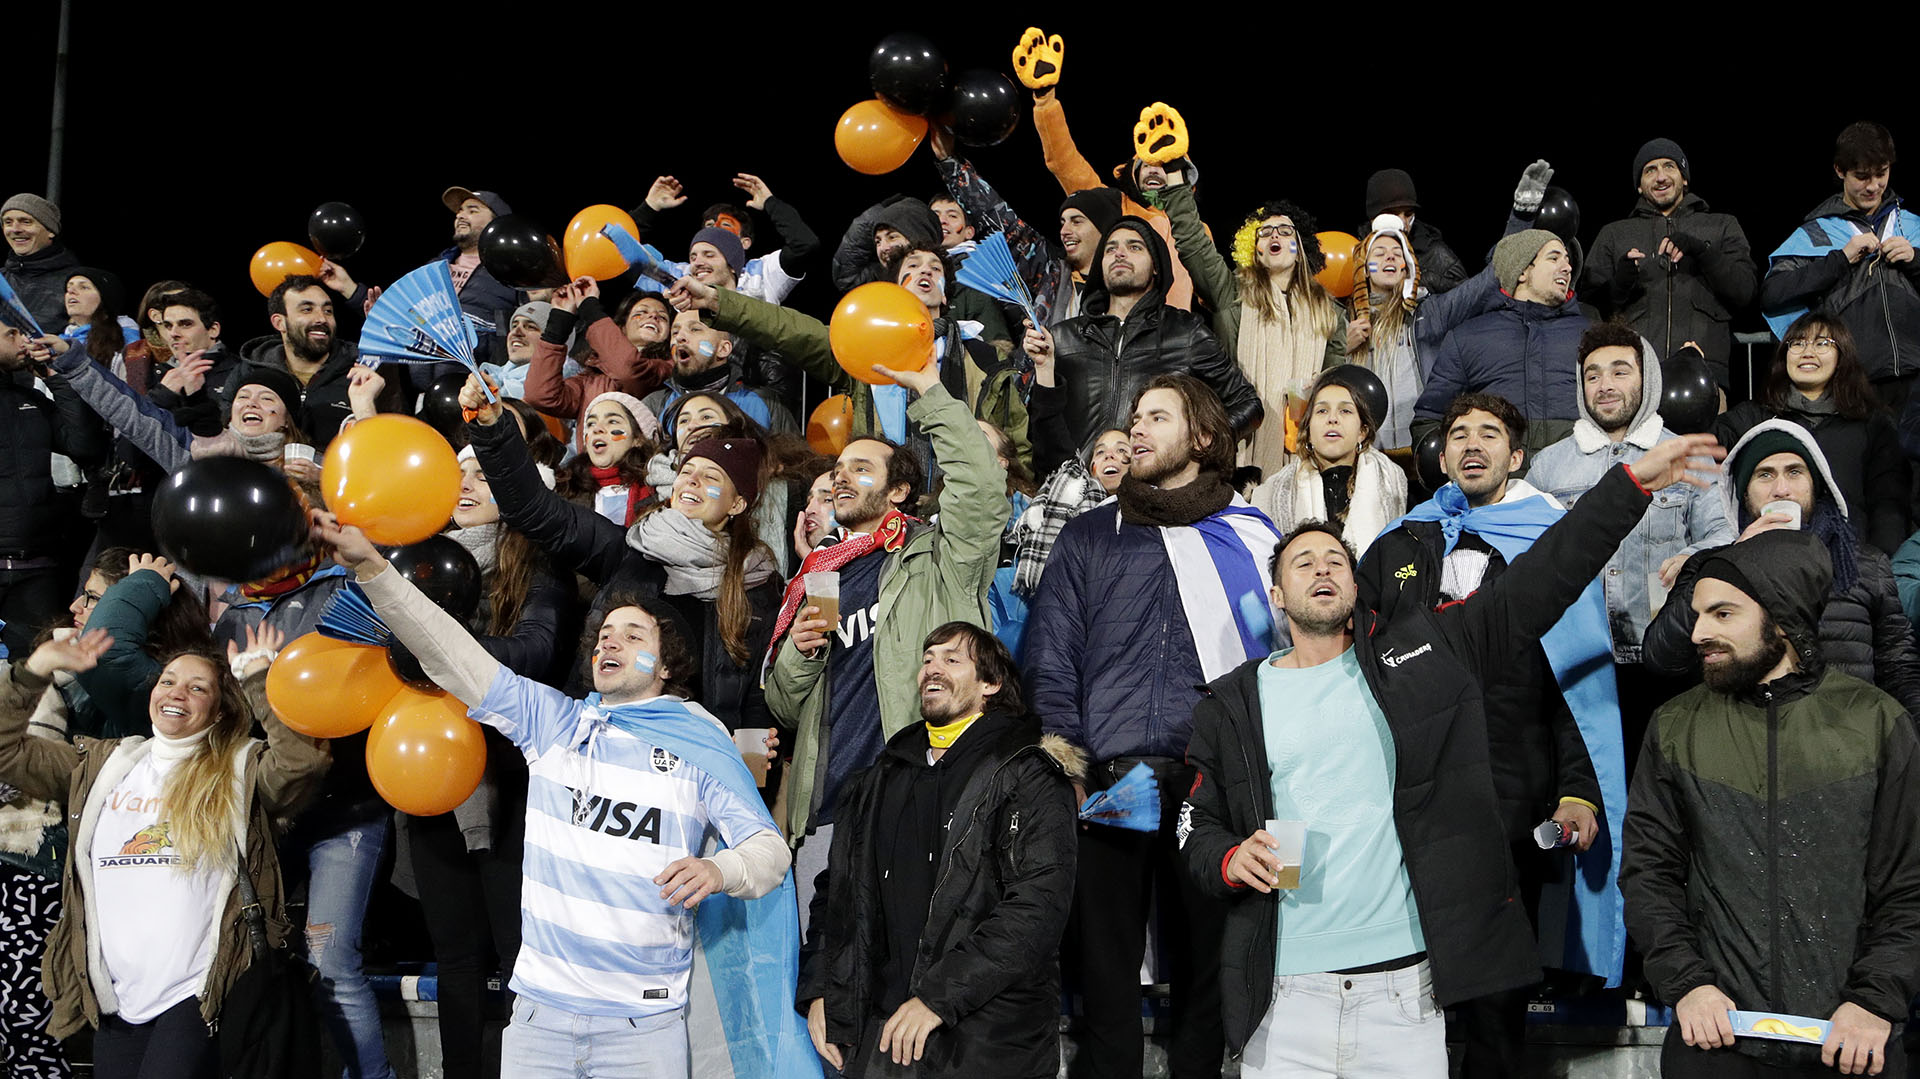 La hinchada argentina saluda el ingreso de Jaguares para disputar la final del Súper Rugby. (AP Photo/Mark Baker)